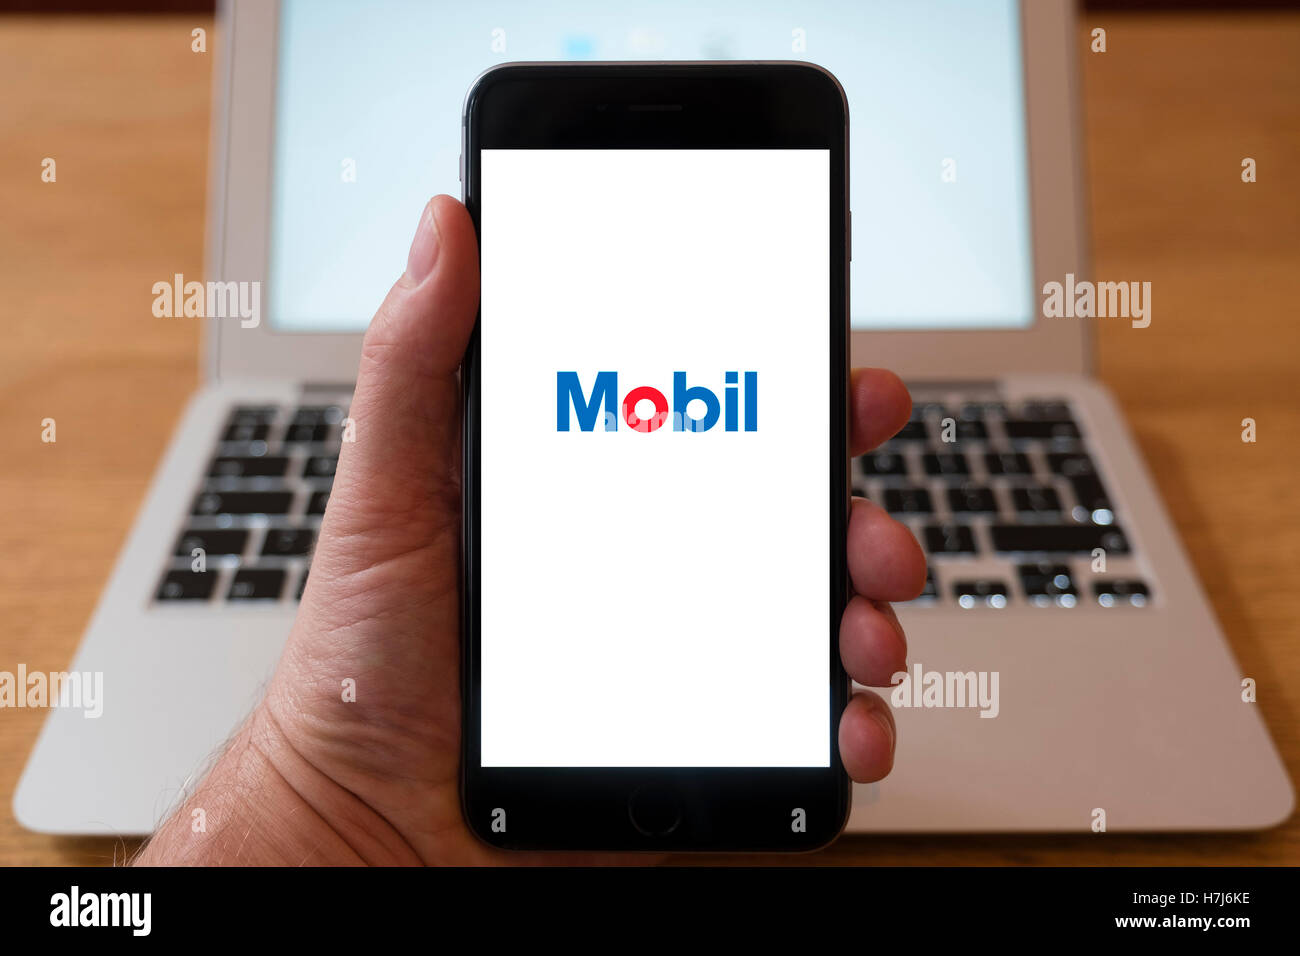 Using iPhone smart phone to display logo of Mobil oil and gas company - Stock Image